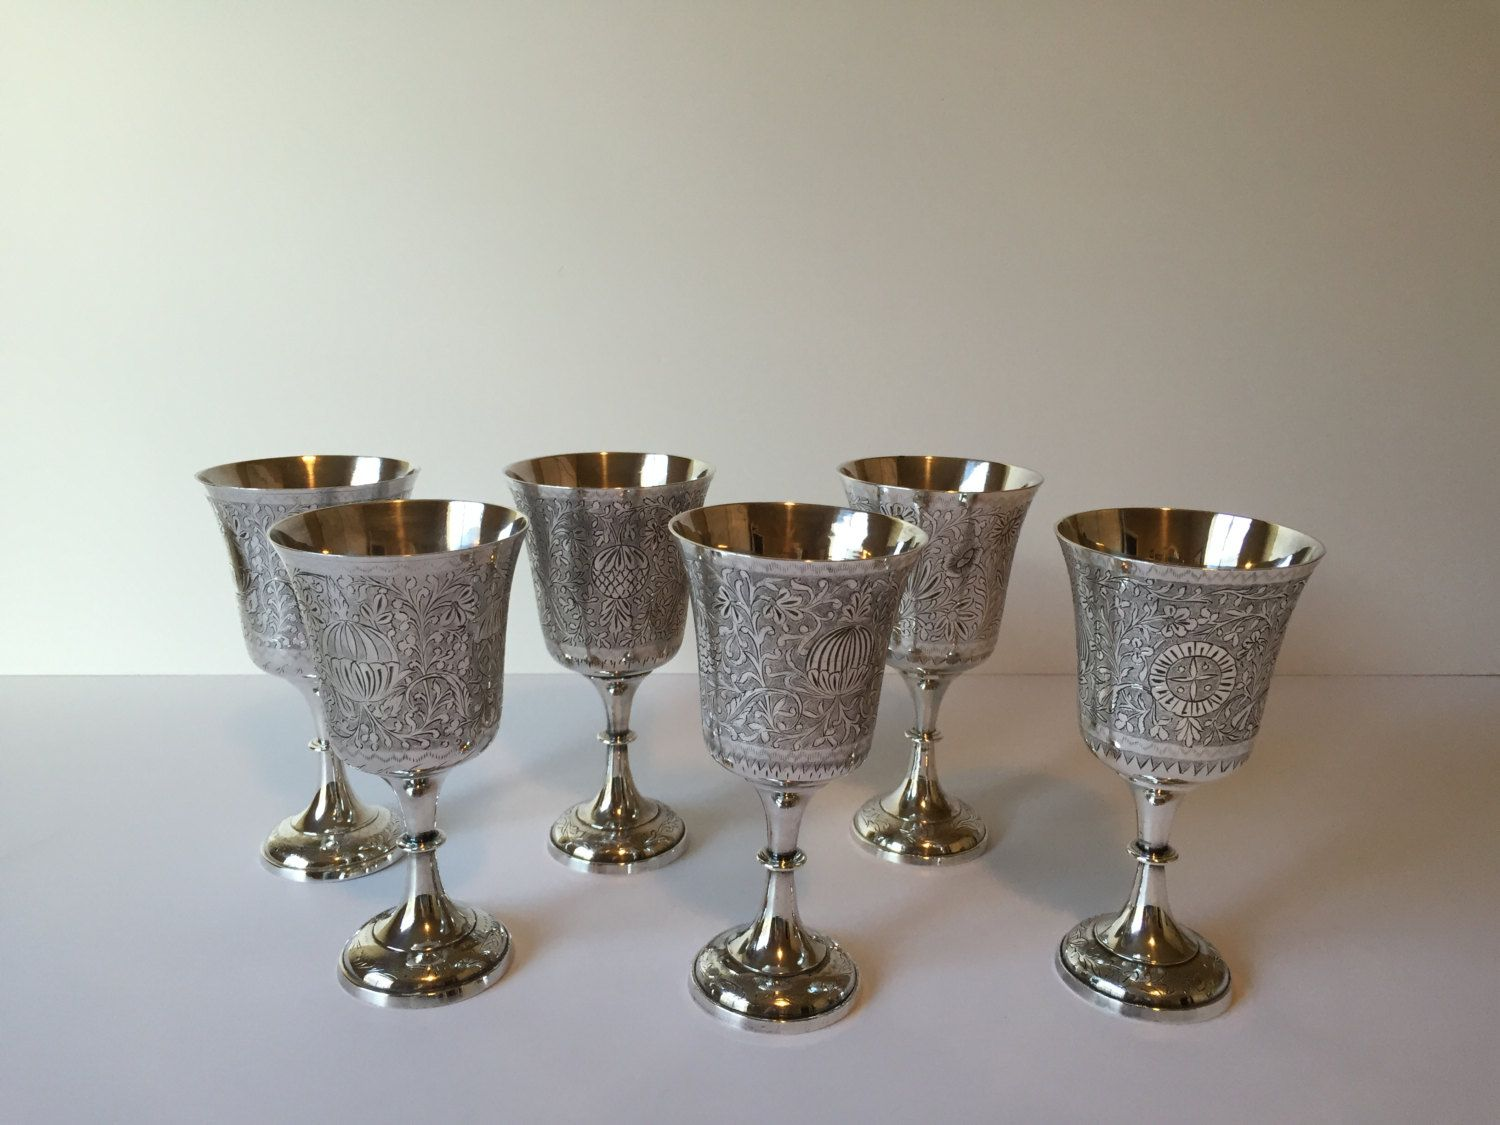 Vintage Silver Wine Glasses Silver Plated Goblets World Gift Etsy Silver Wine Glasses Vintage Silver Wine Glasses